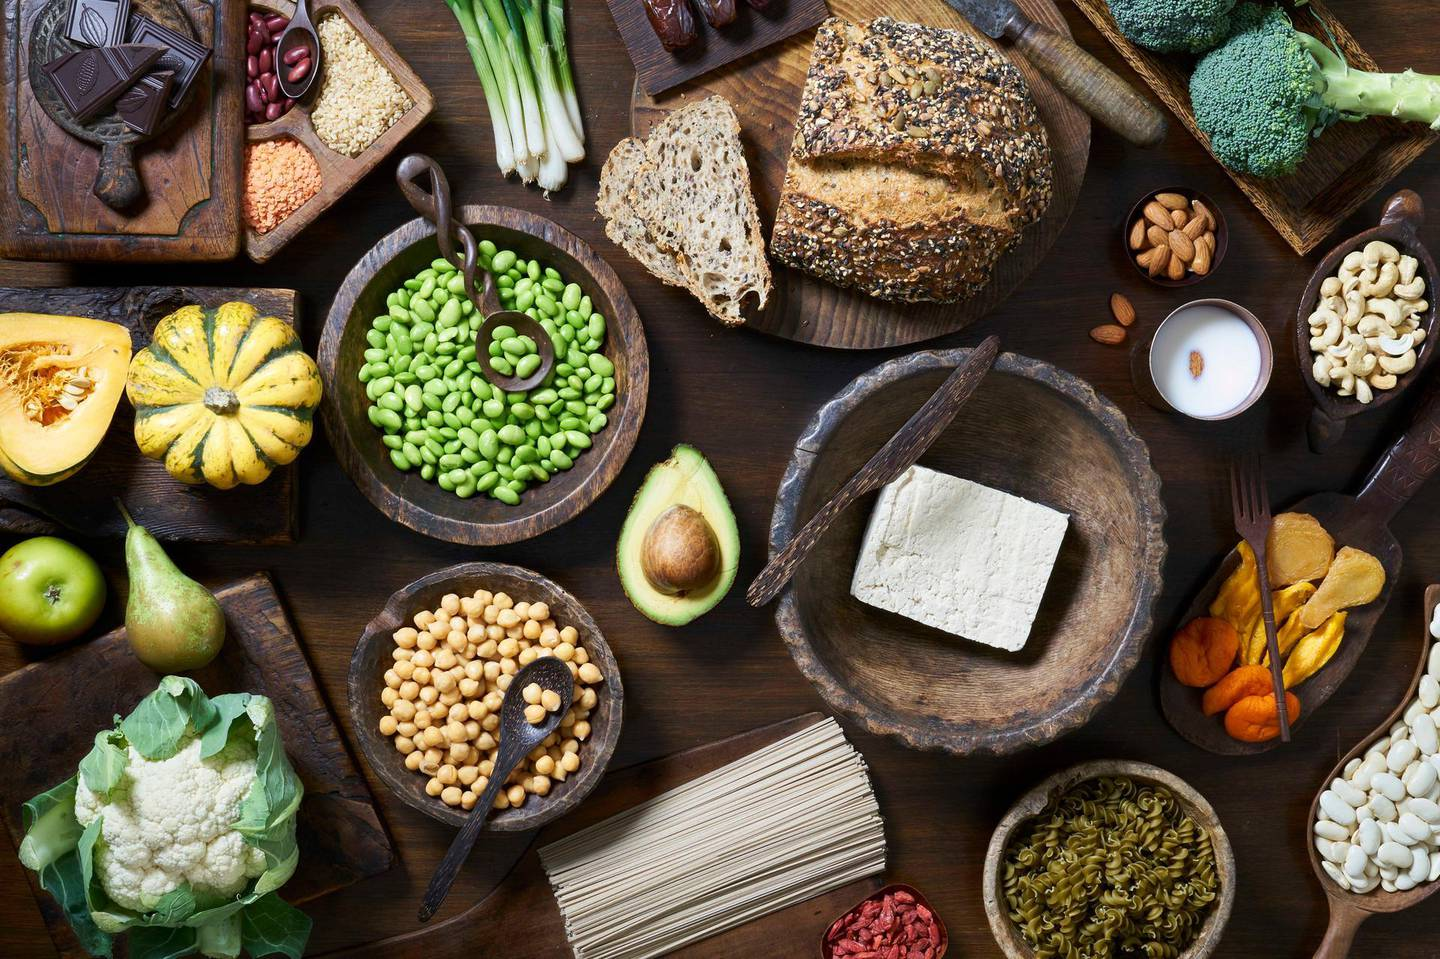 Overhead shot of healthy vegan food including fruit vegetables tofu and beans. Getty Images